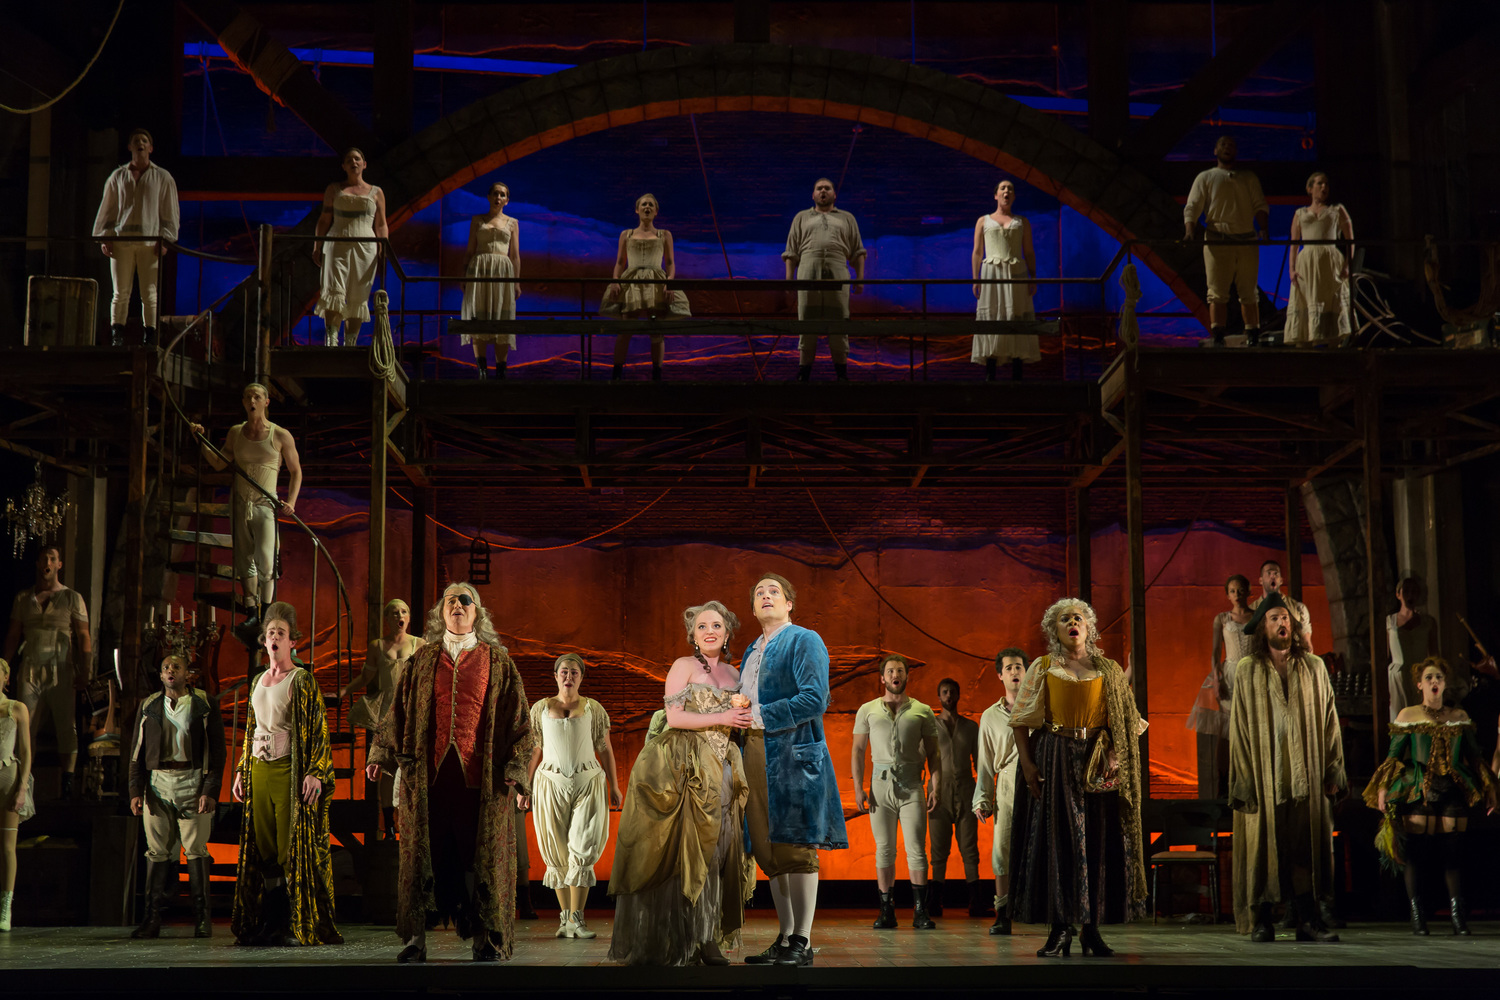 Uncategorizable, Brilliant, and Profound: Bernstein's CANDIDE at the Washington National Opera